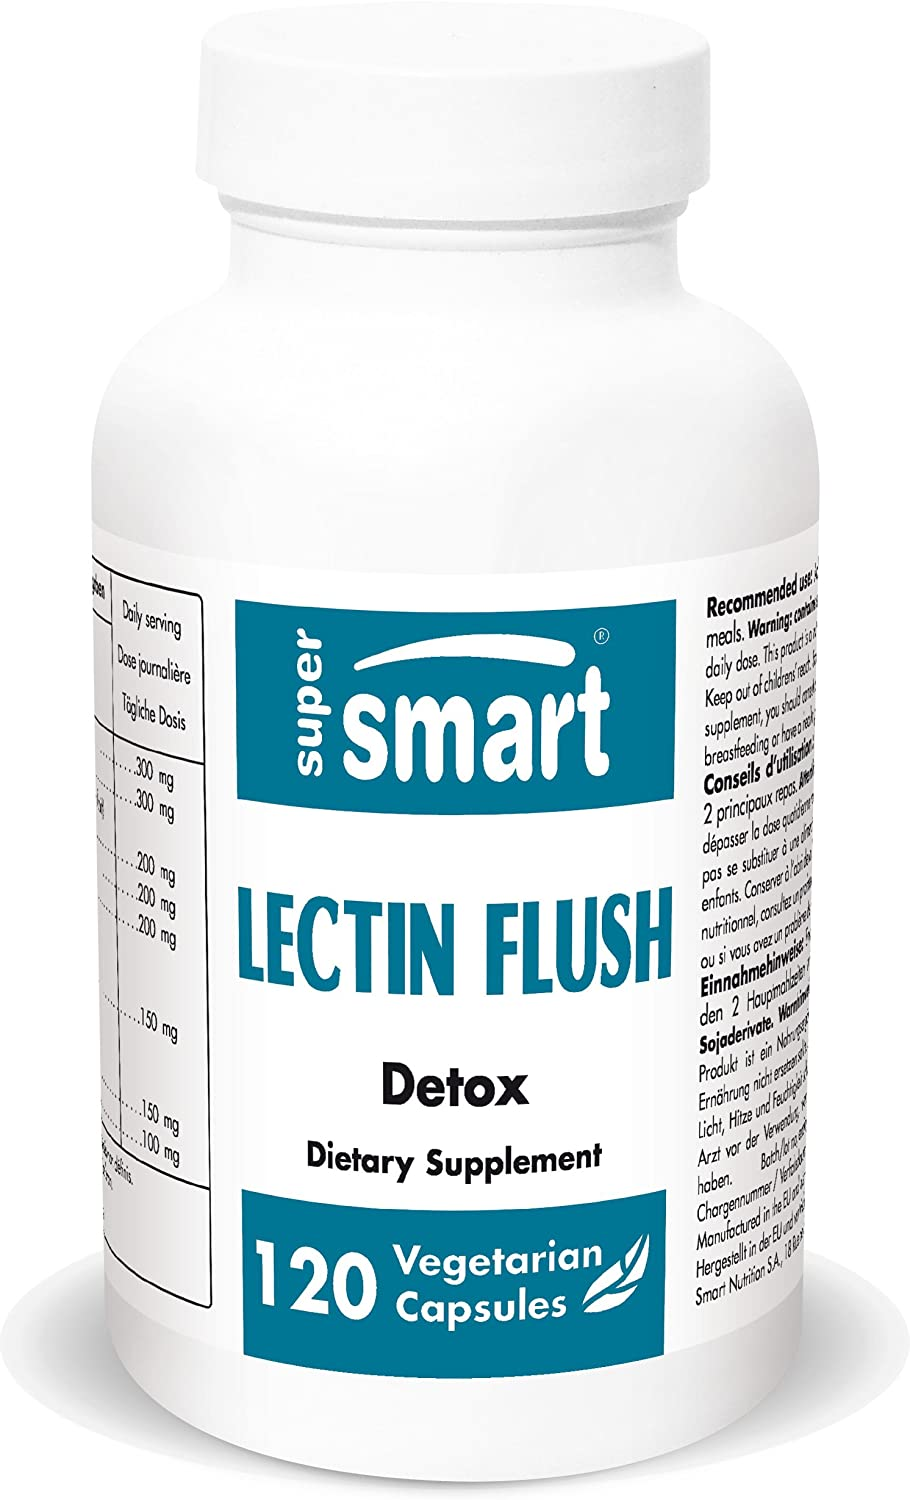 Supersmart - Lectin Flush - Support for Food Allergies & Intolerances - Promote Healthy Digestive Tract - Detox Supplement | Non-GMO & Gluten Free - 120 Vegetarian Capsules